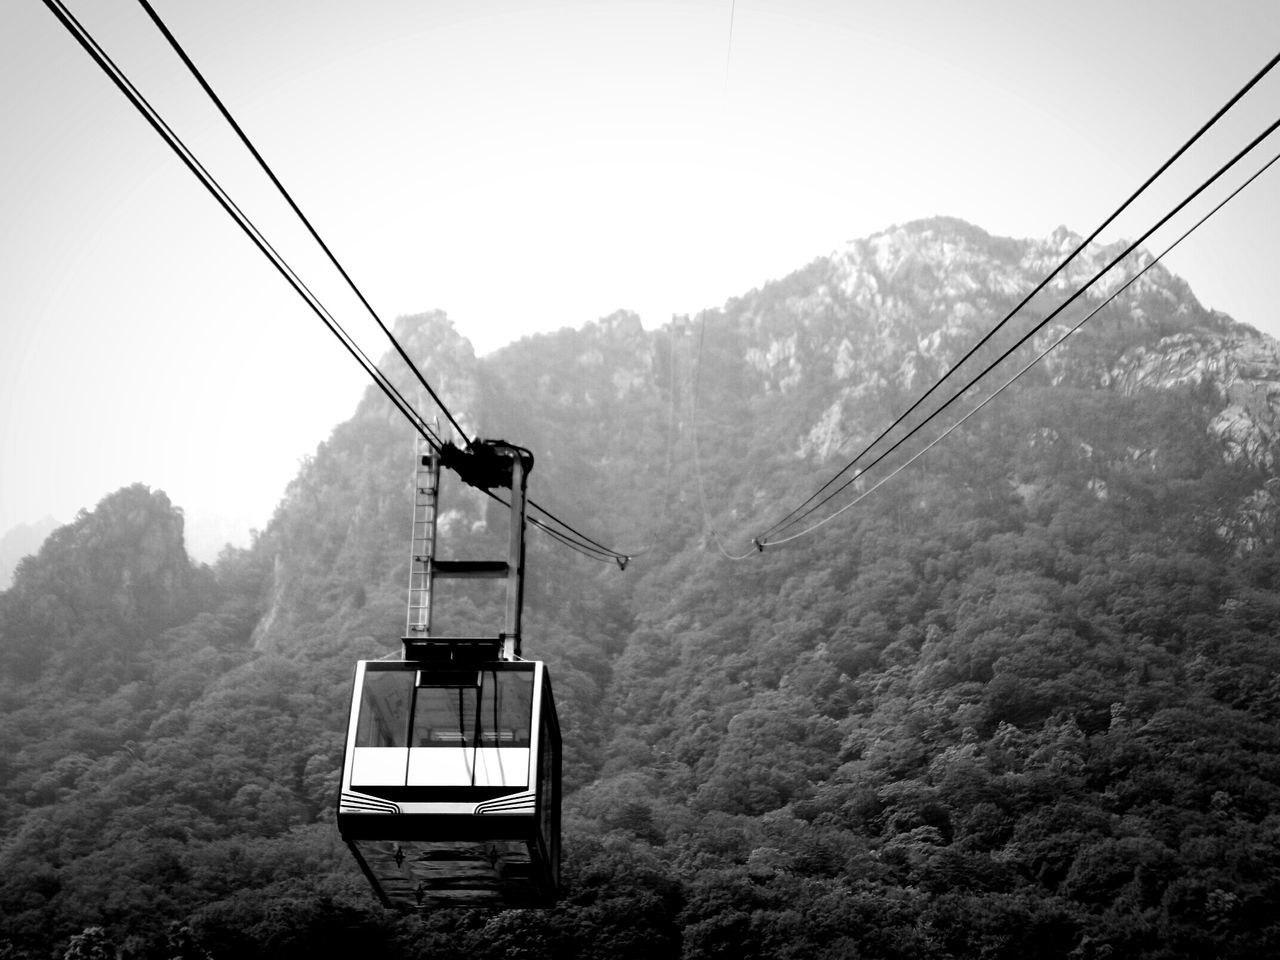 Seoraksan Clear Sky Mount Sorak Mount Sorak, Korea Seoraksannationalpark Foggy Foggy Landscape Outdoors Outdoor Photography Nature Photography Nature South Korea Seorak Mountain Korea Mountain Forest Woods Trees Cable Car B&w Black And White Photography Black And White Sky Black & White